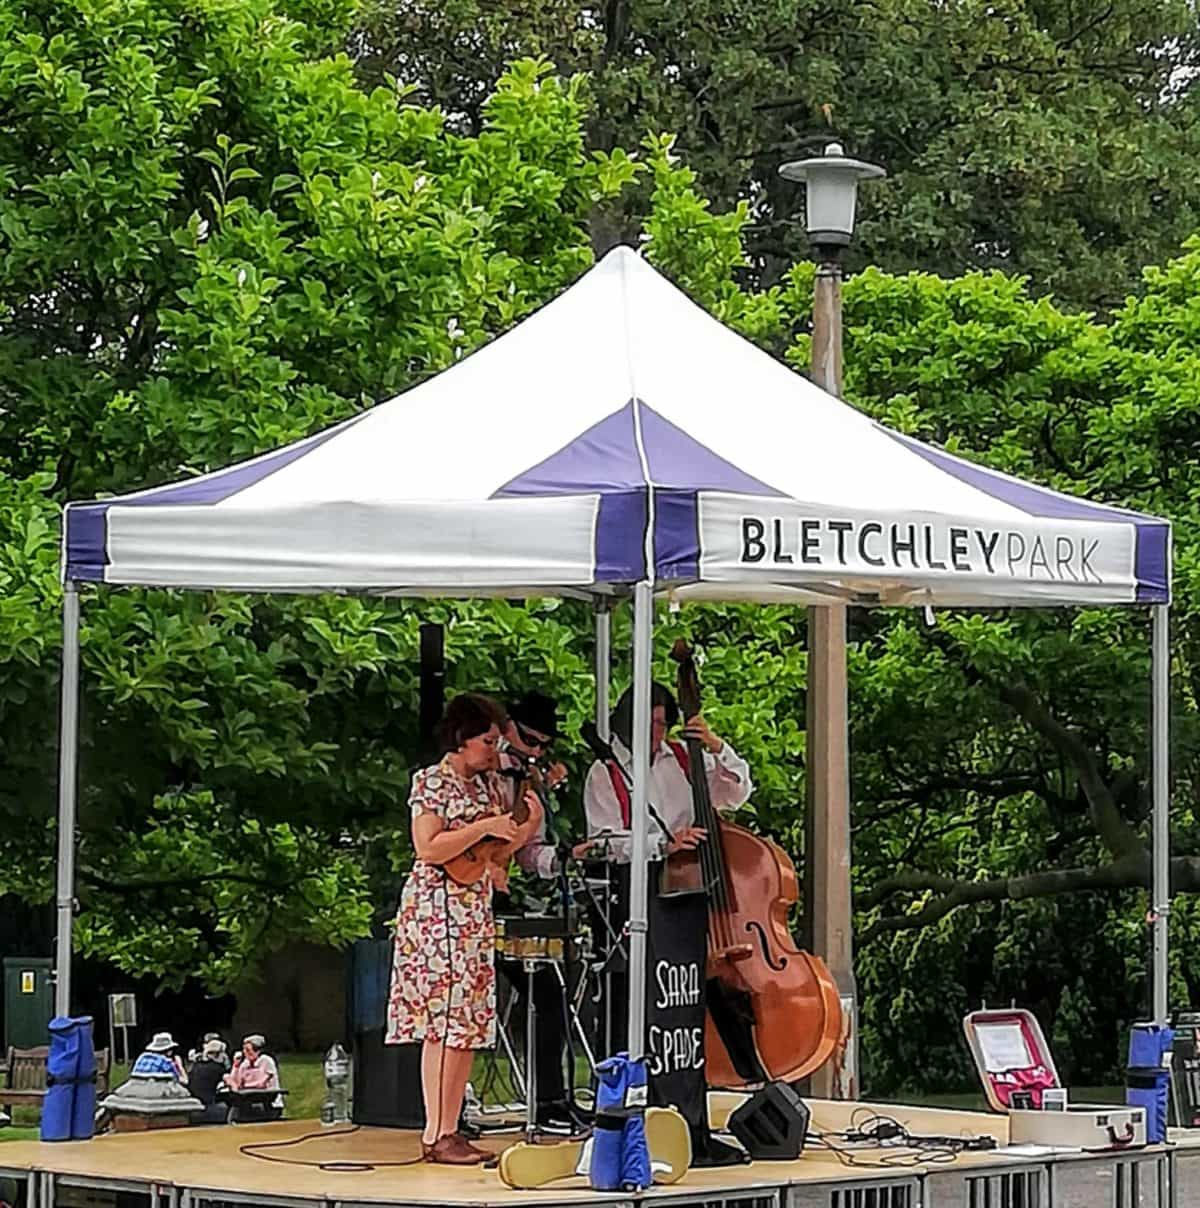 live music entertainment on the grounds of the Bletchley Park Manor house